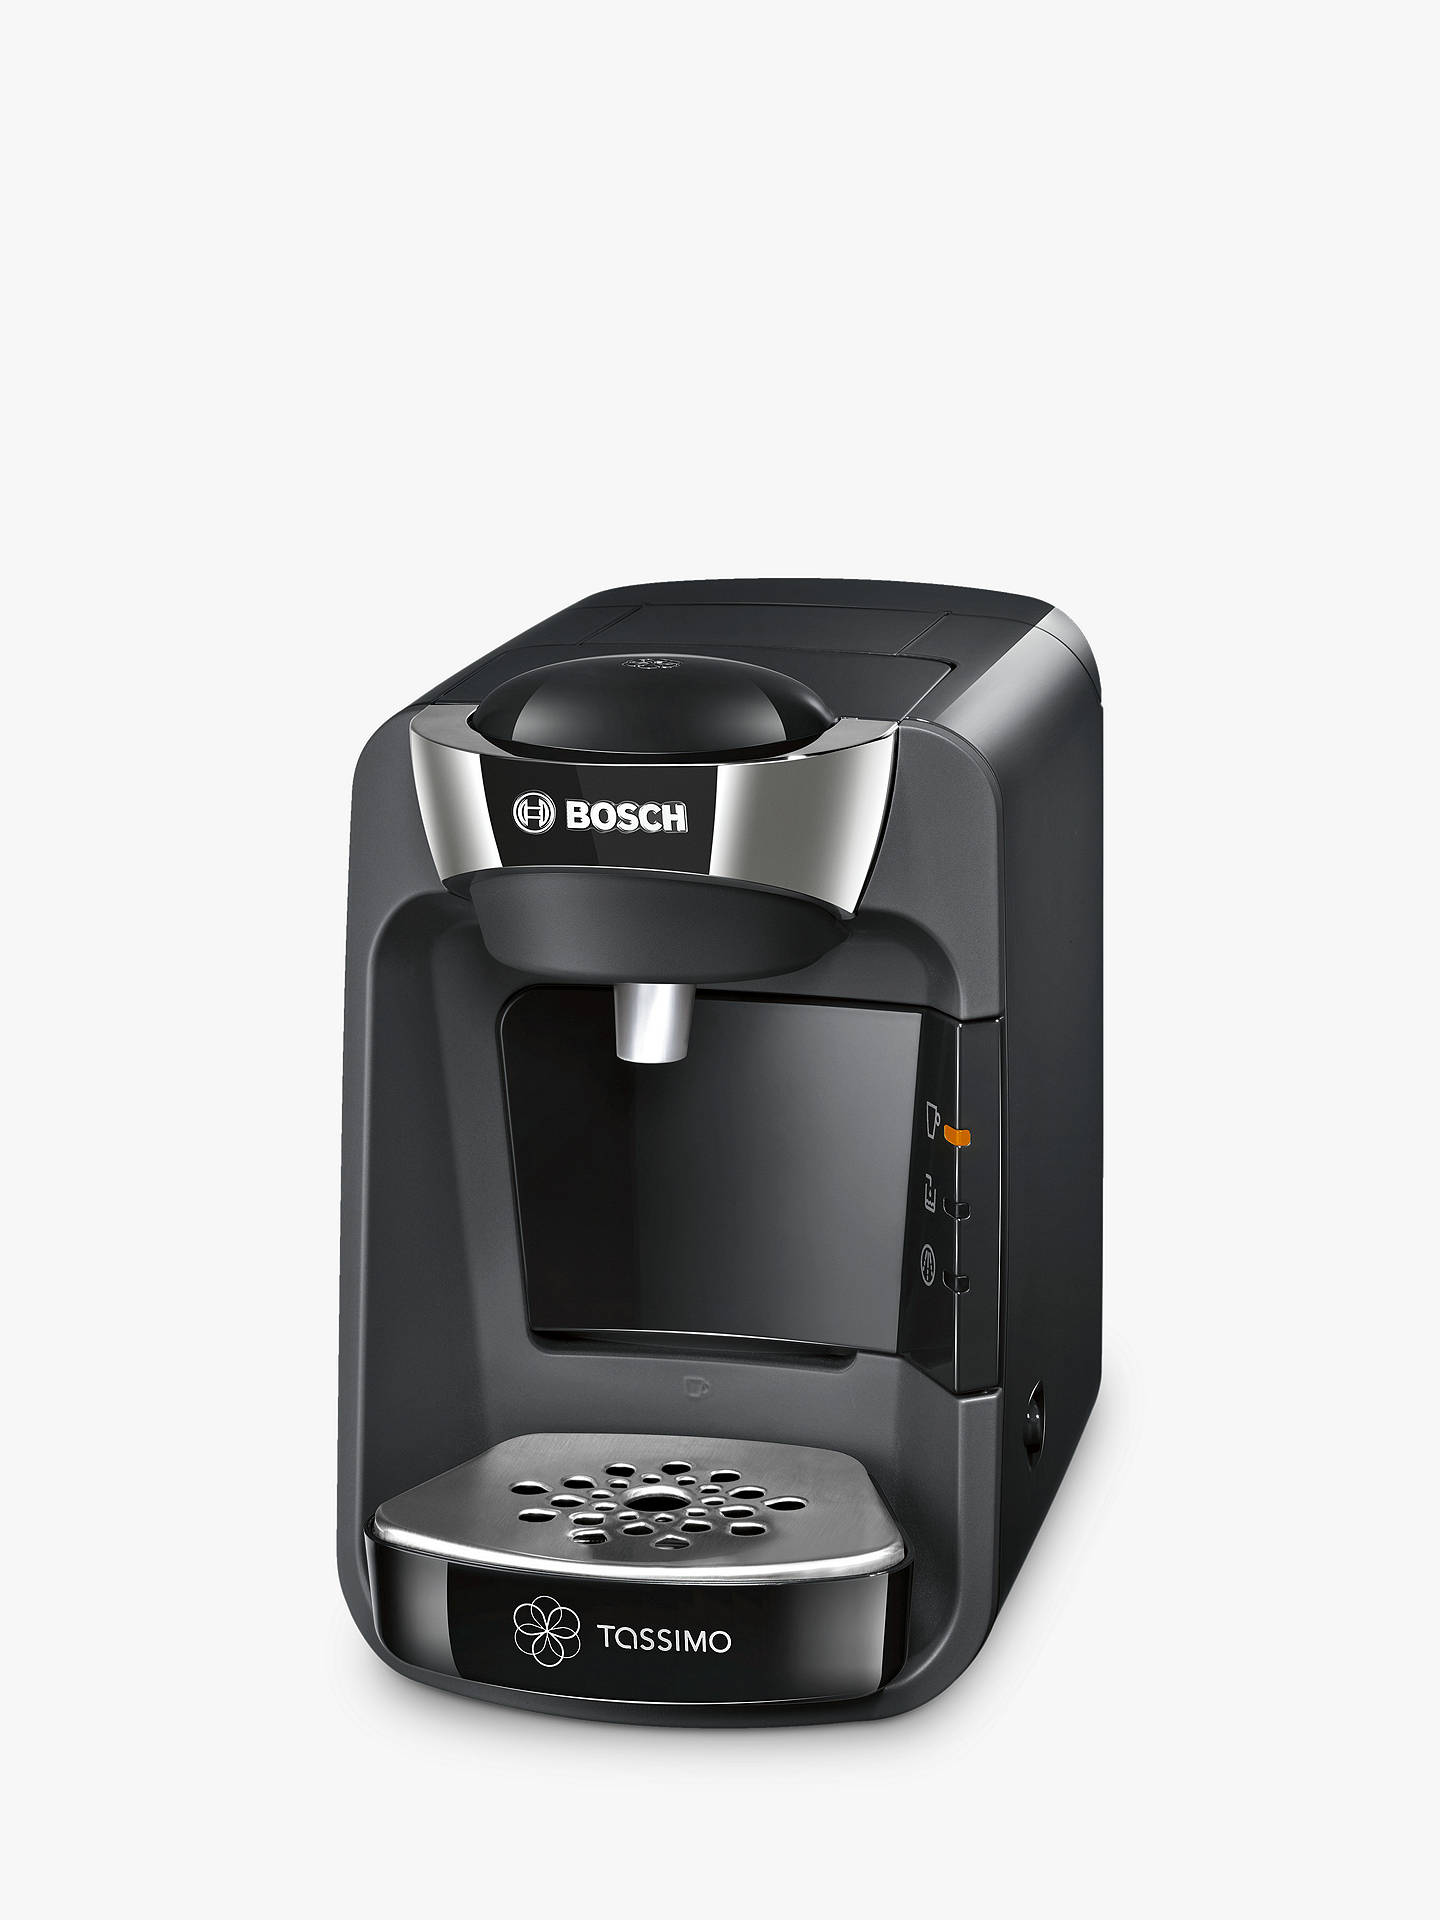 Bosch Coffee Maker Tassimo Parts - Free Wallpapers